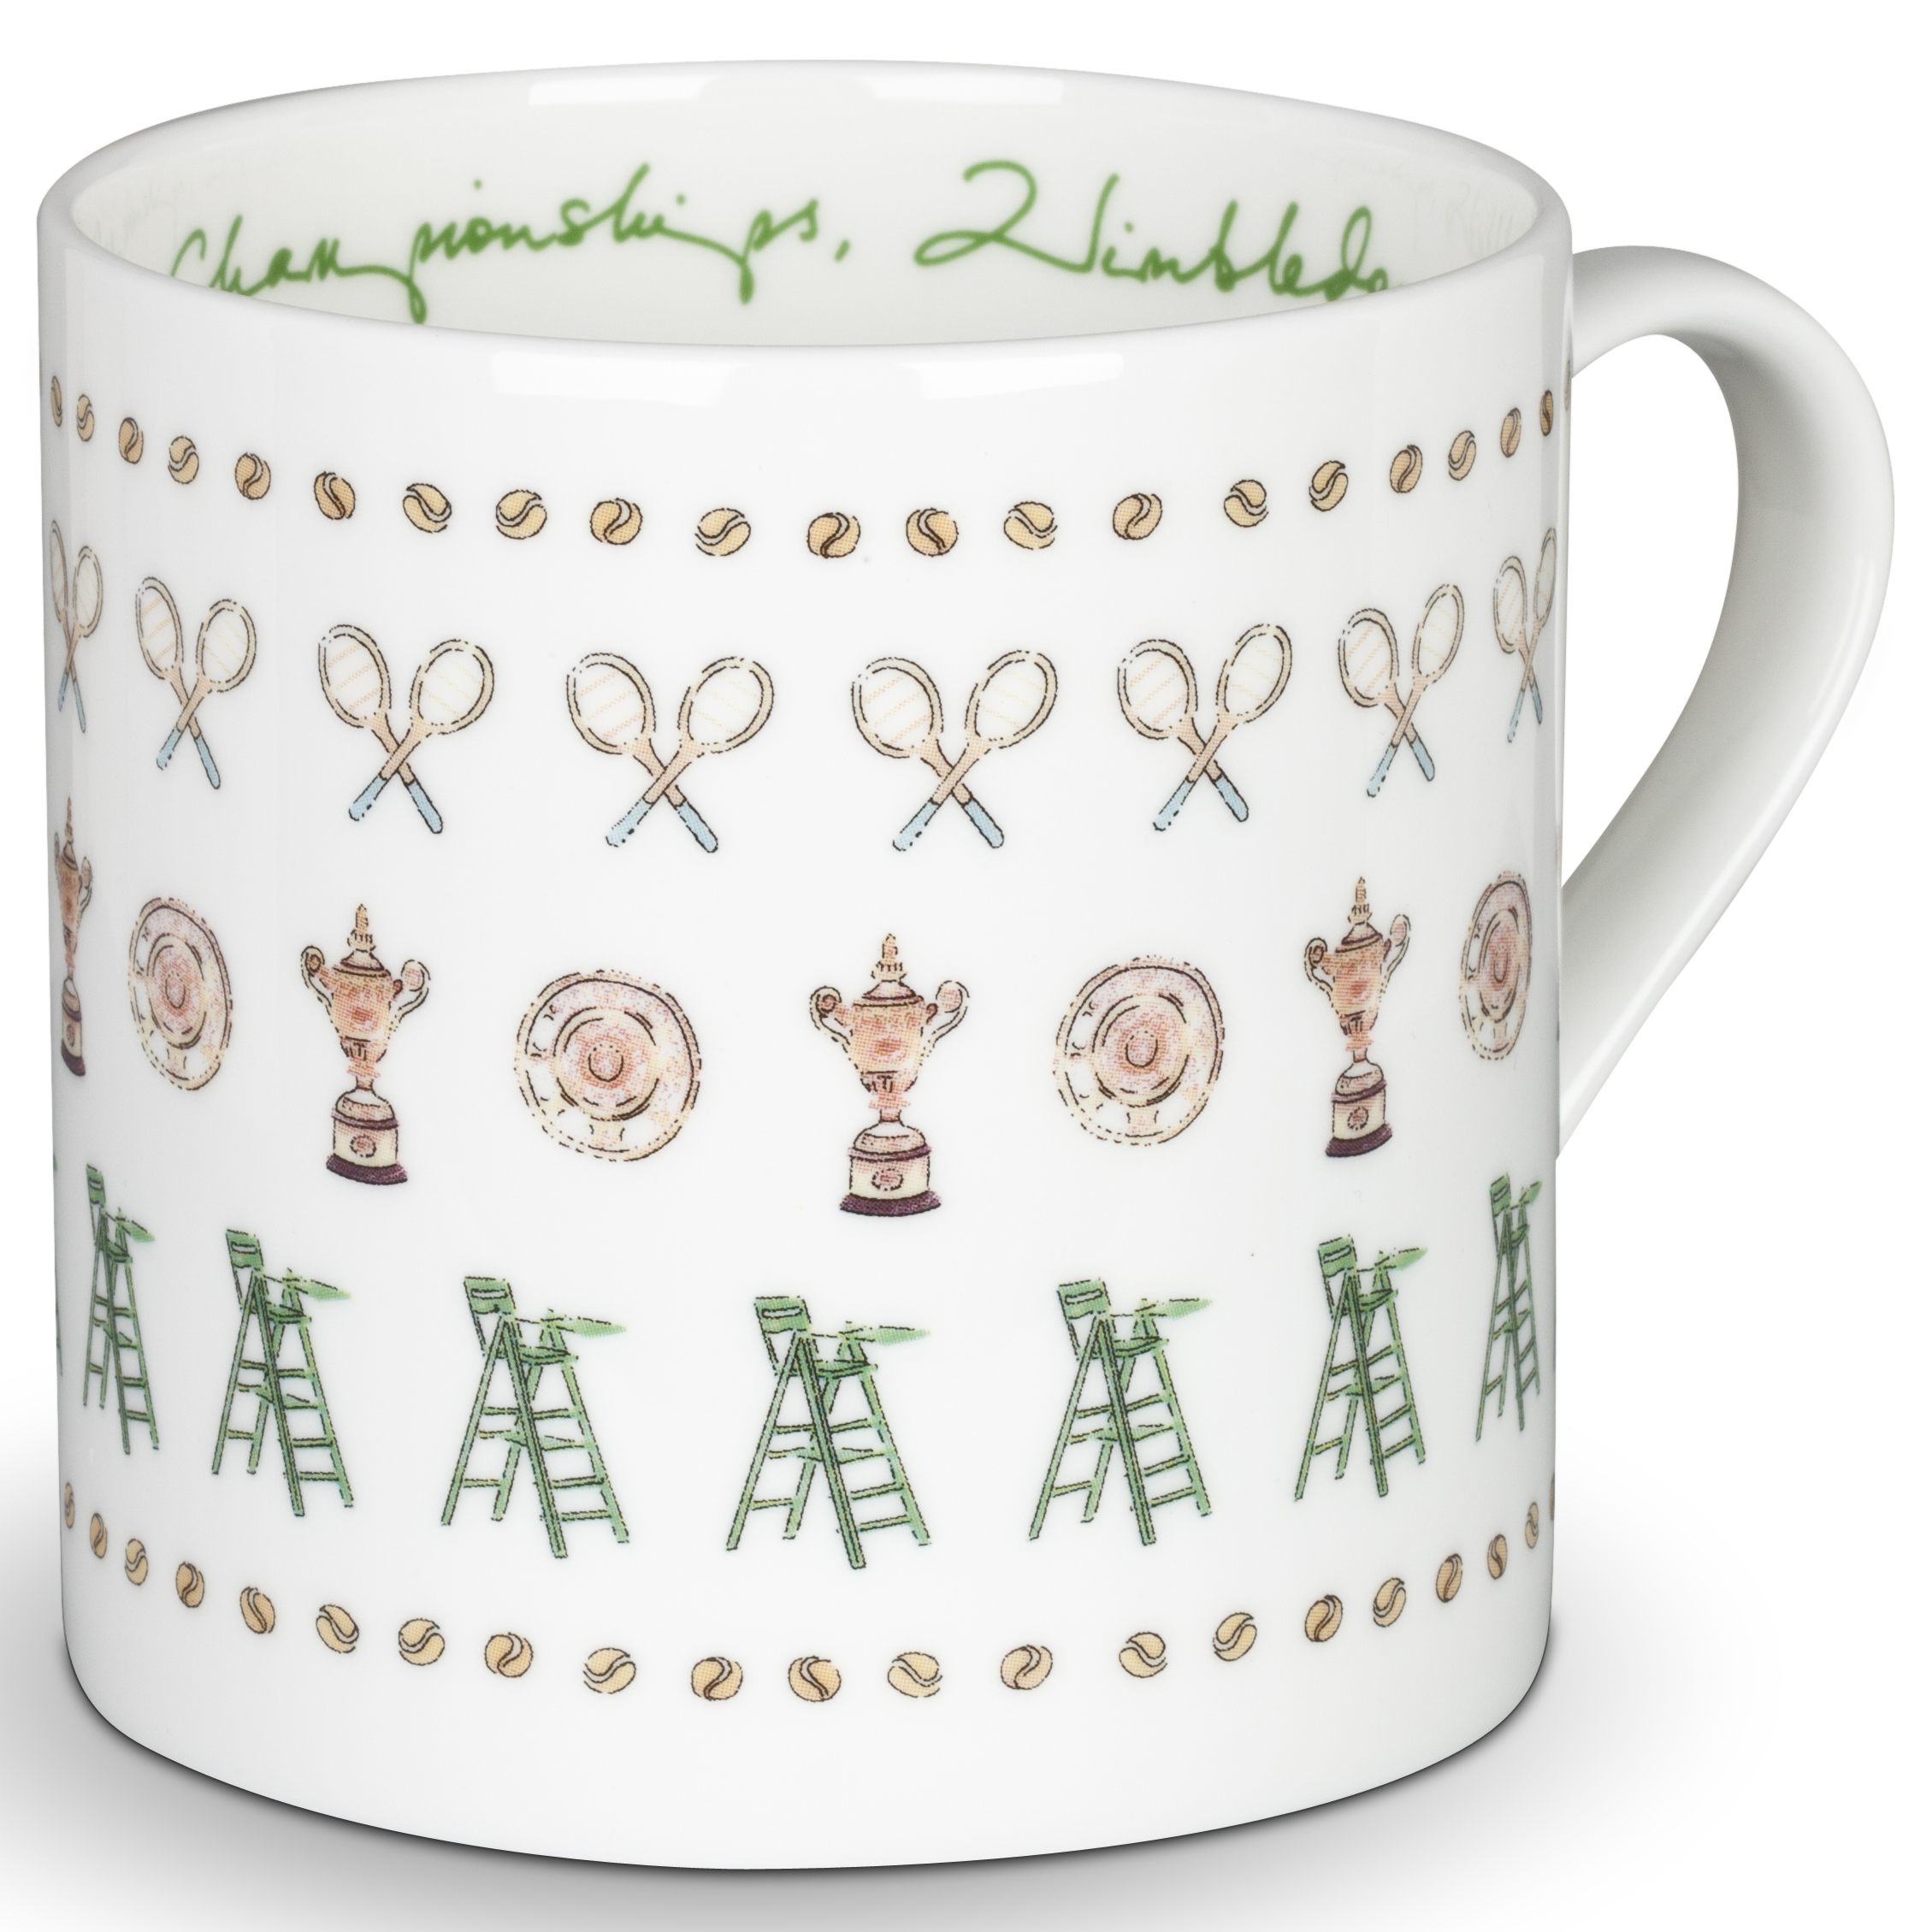 Wimbledon Racket and Umpire Mug